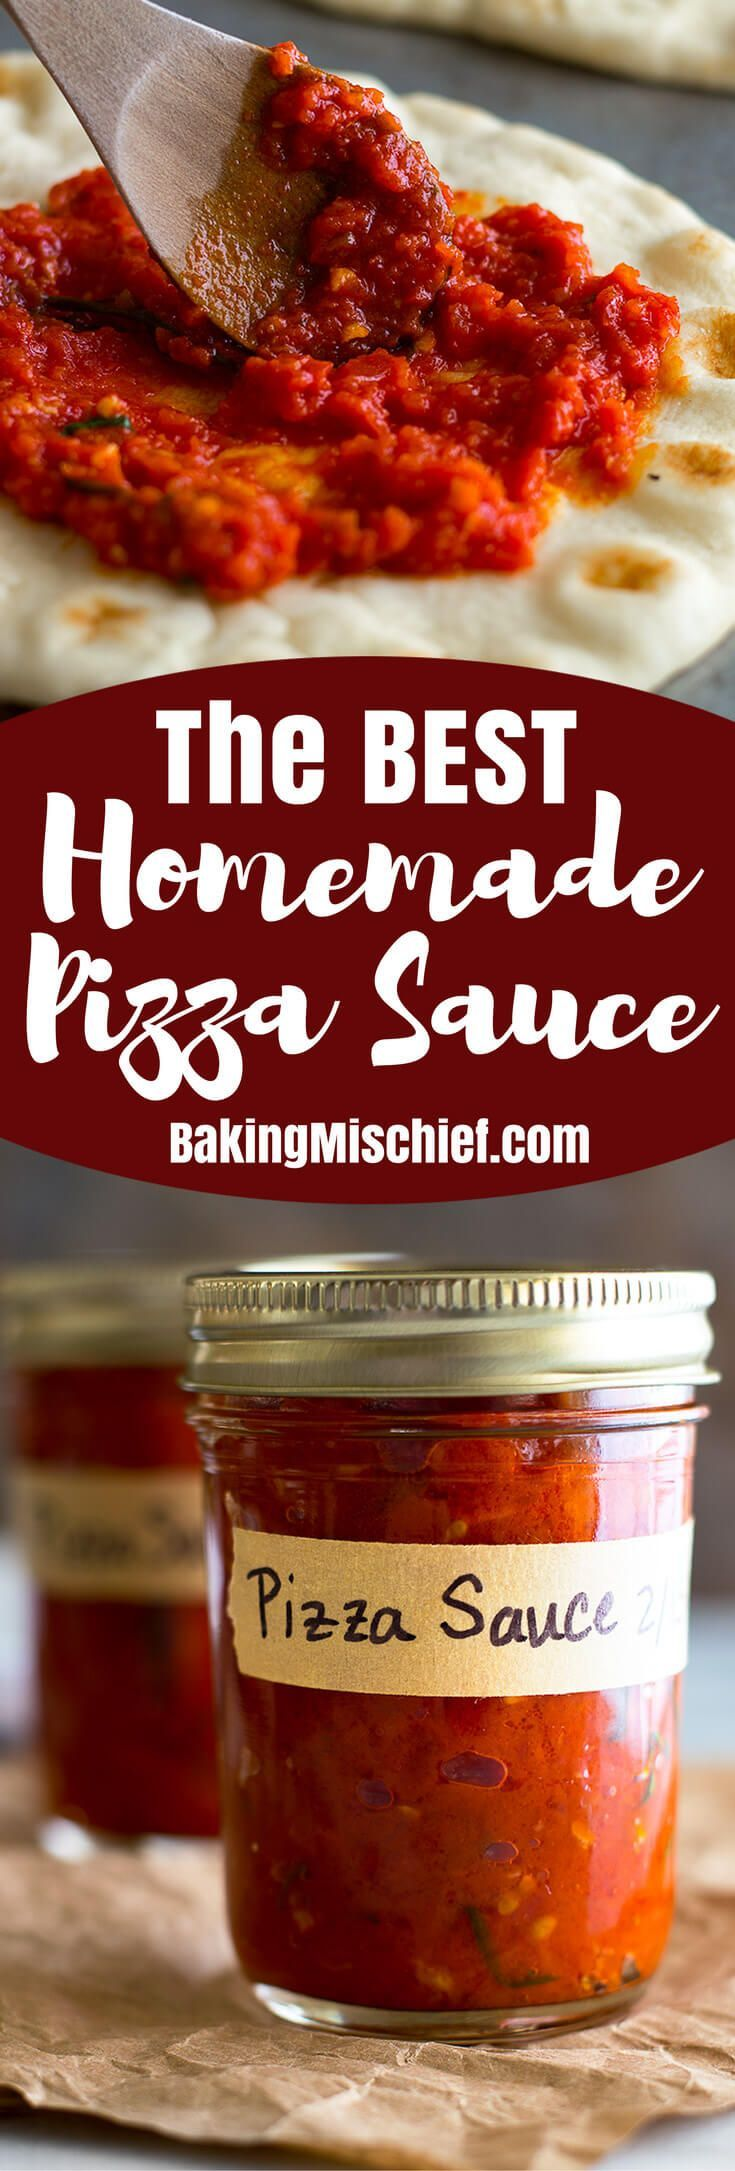 Best 20 Pizza sauce recipes ideas on Pinterest Pizza sauce